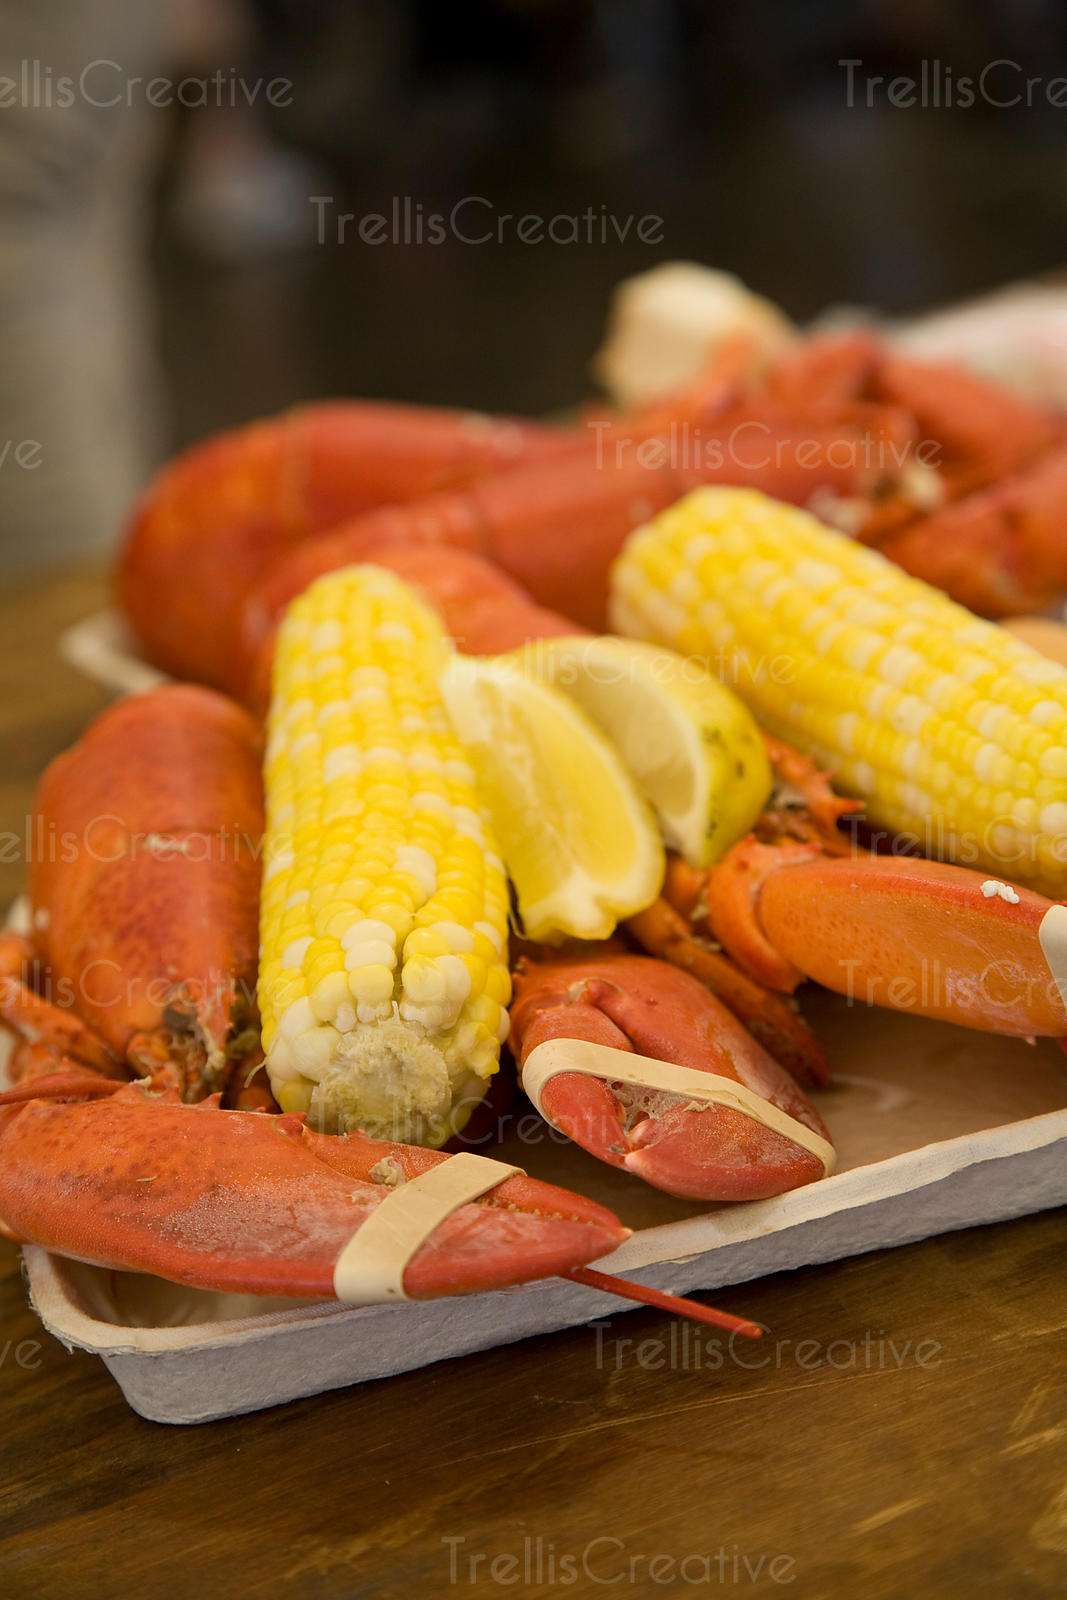 Steamed lobster with corn on the cob and melted butter at Rockland, Maine Lobster Festival